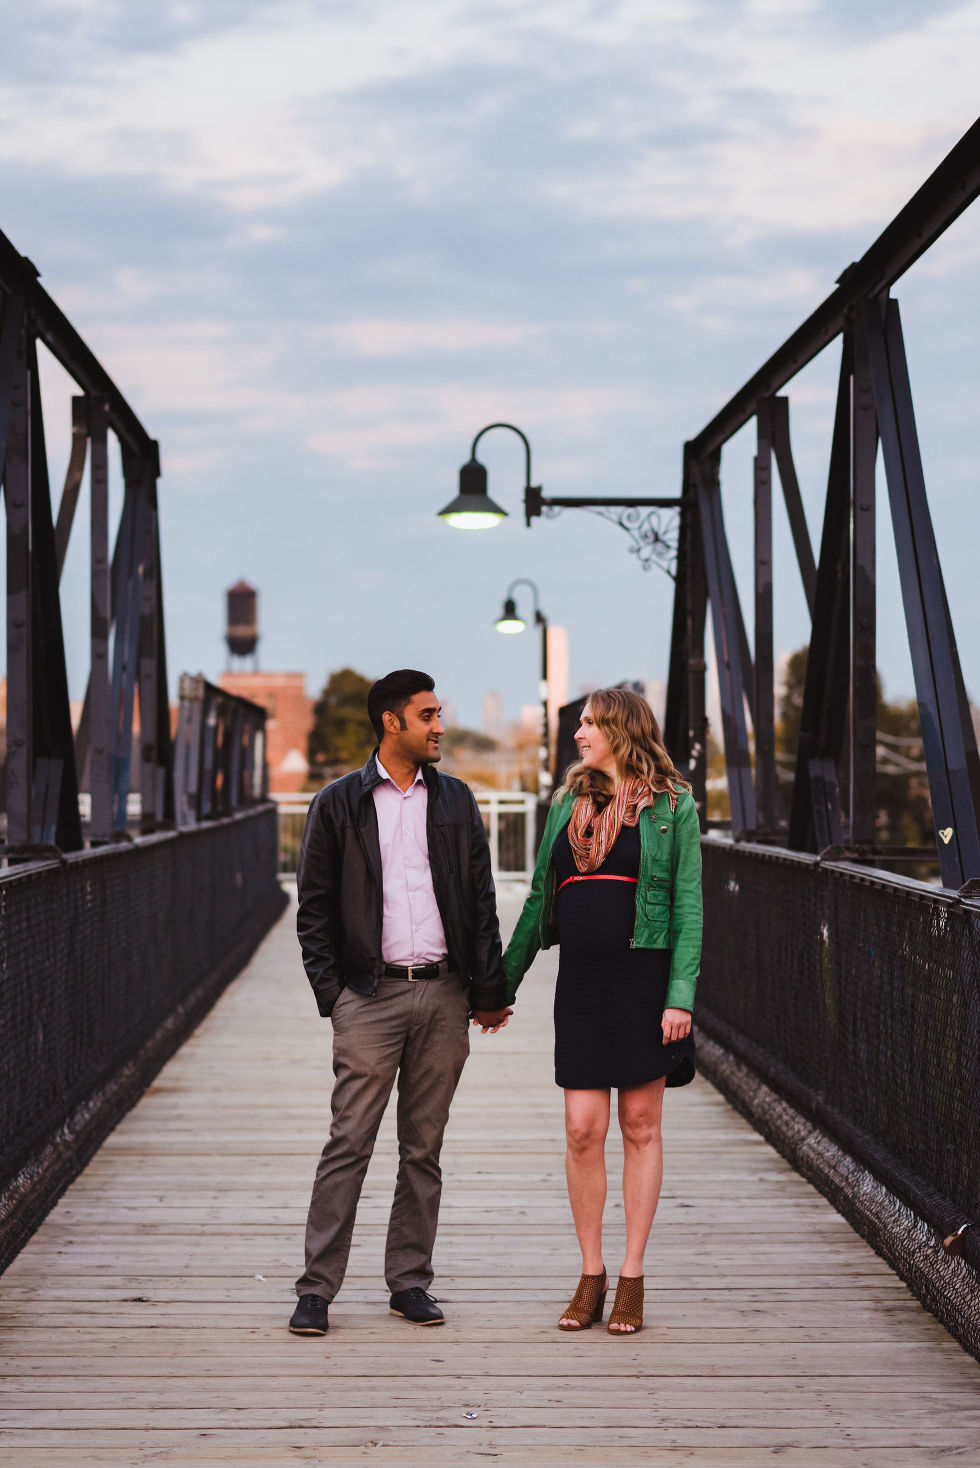 man and woman stroll together holding hands on a bridge in the Junction with Toronto skyline in background